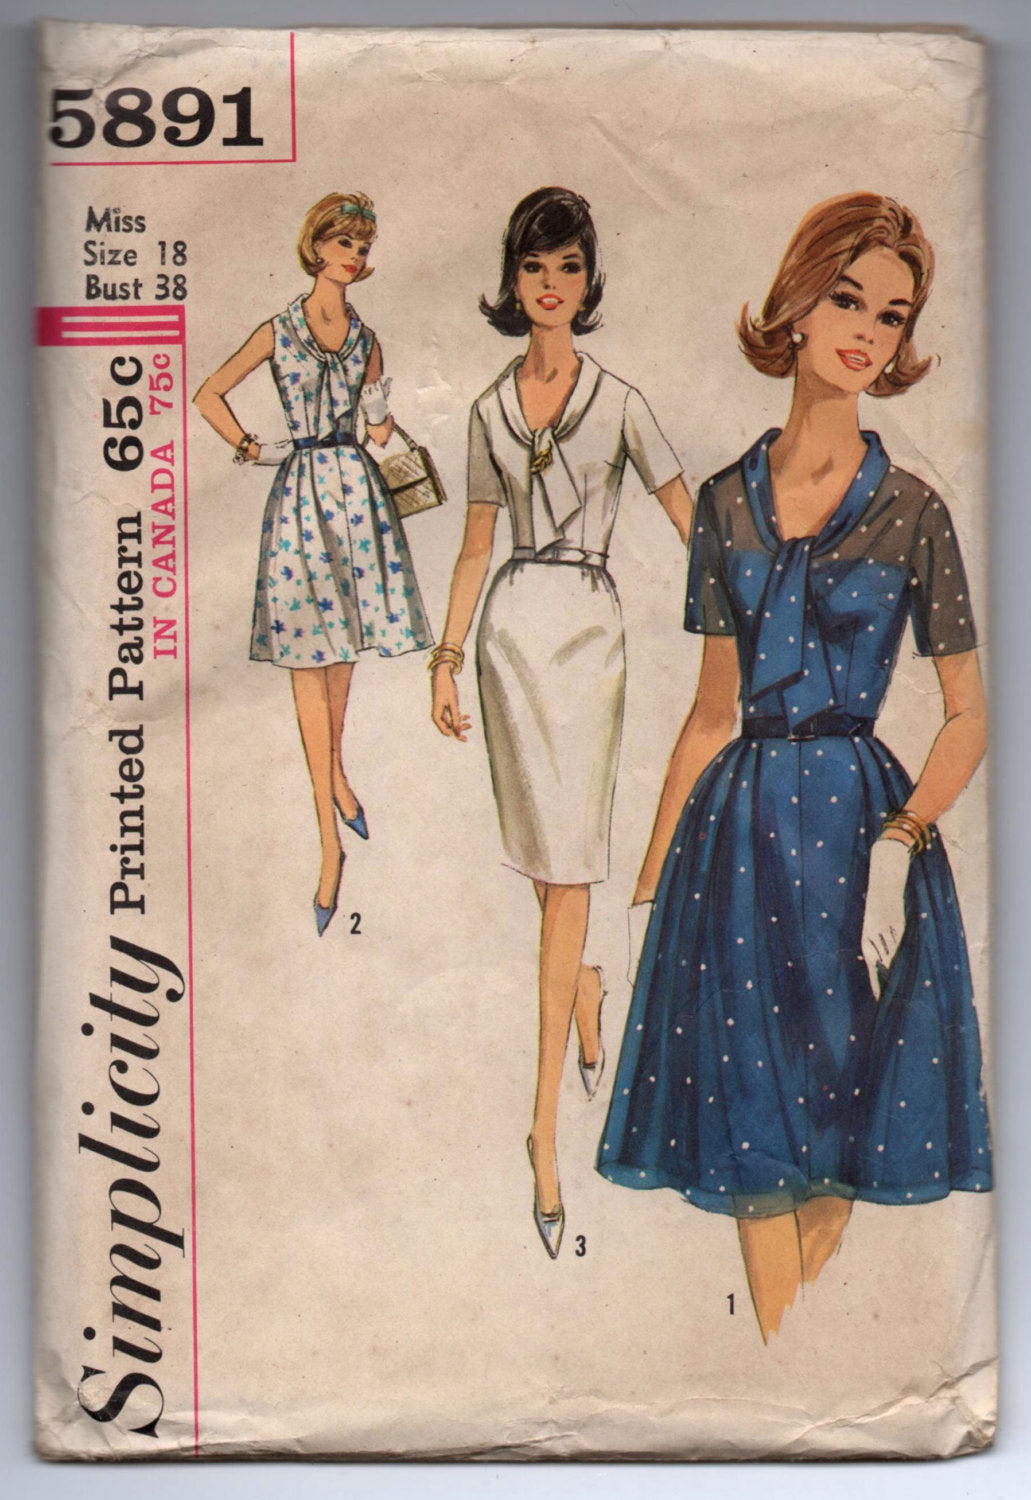 1960's Simplicity One-Piece Dress with Tie Collar in Pencil or Full Skirt Pattern - Bust 38